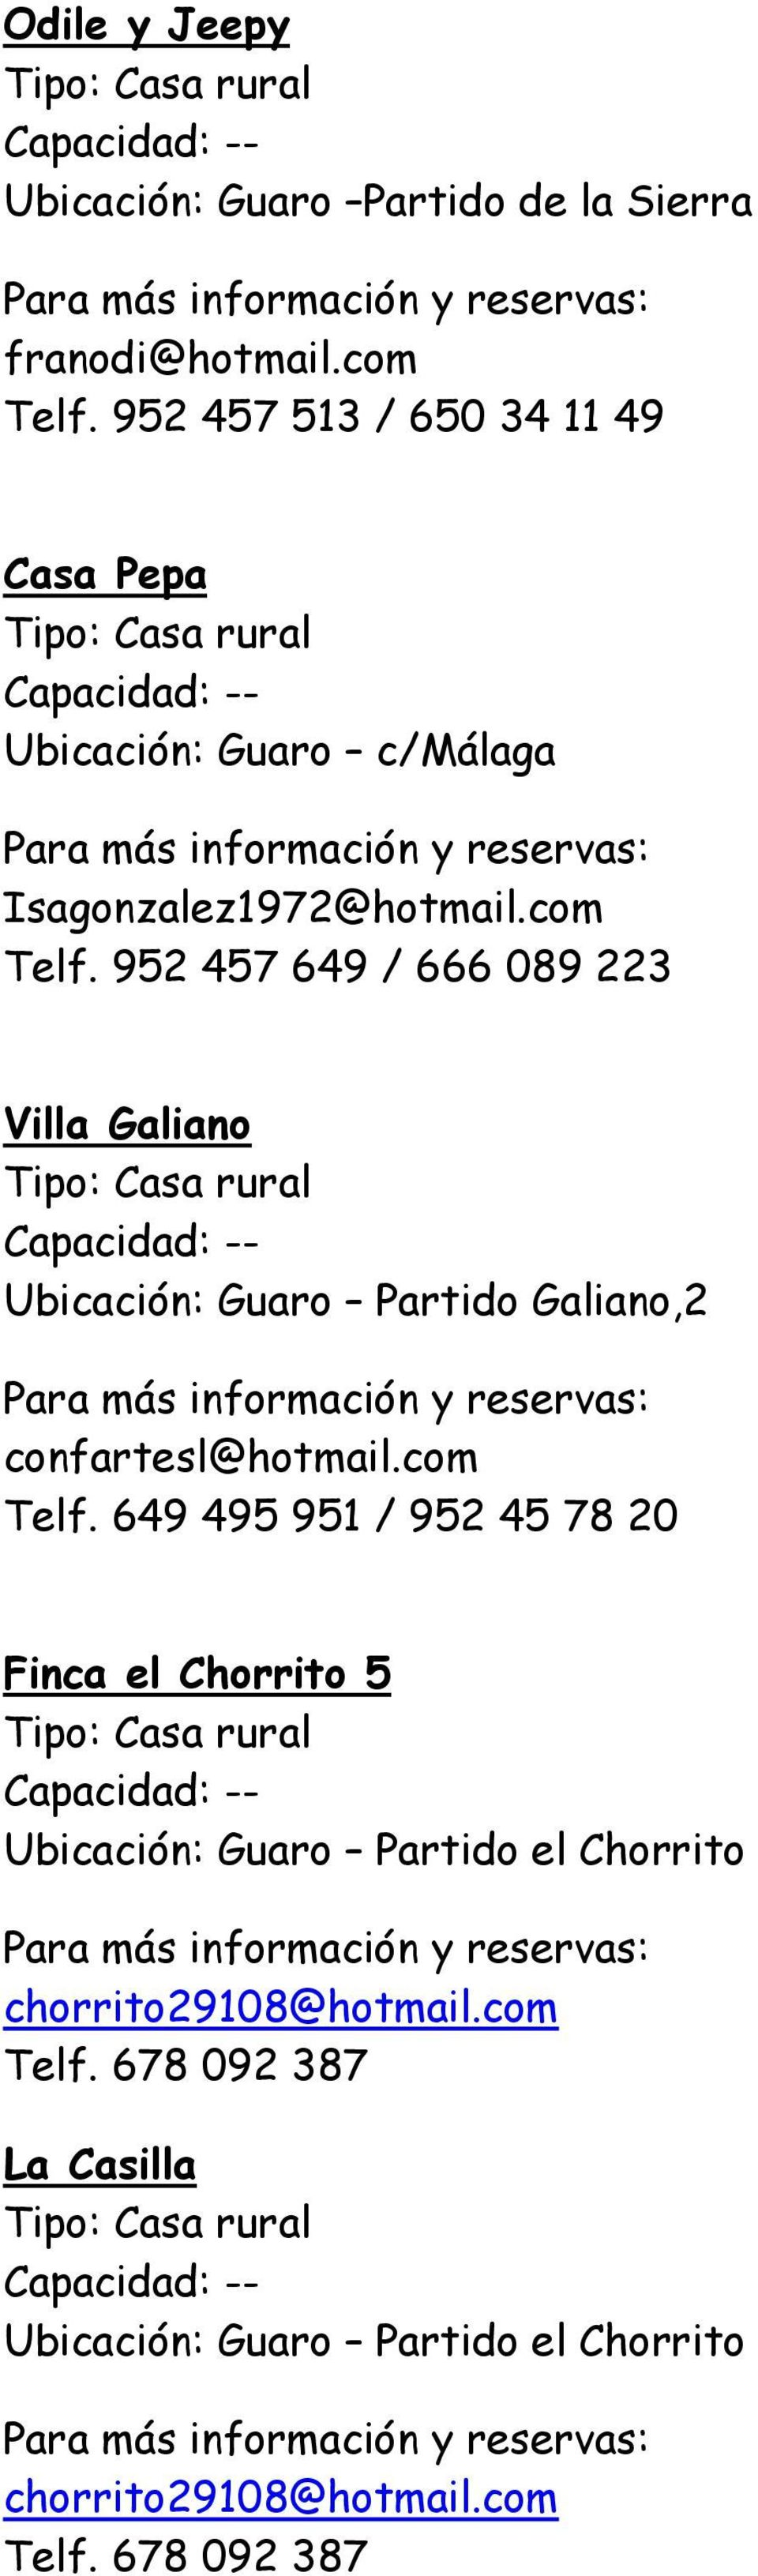 952 457 649 / 666 089 223 Villa Galiano Ubicación: Guaro Partido Galiano,2 confartesl@hotmail.com Telf.